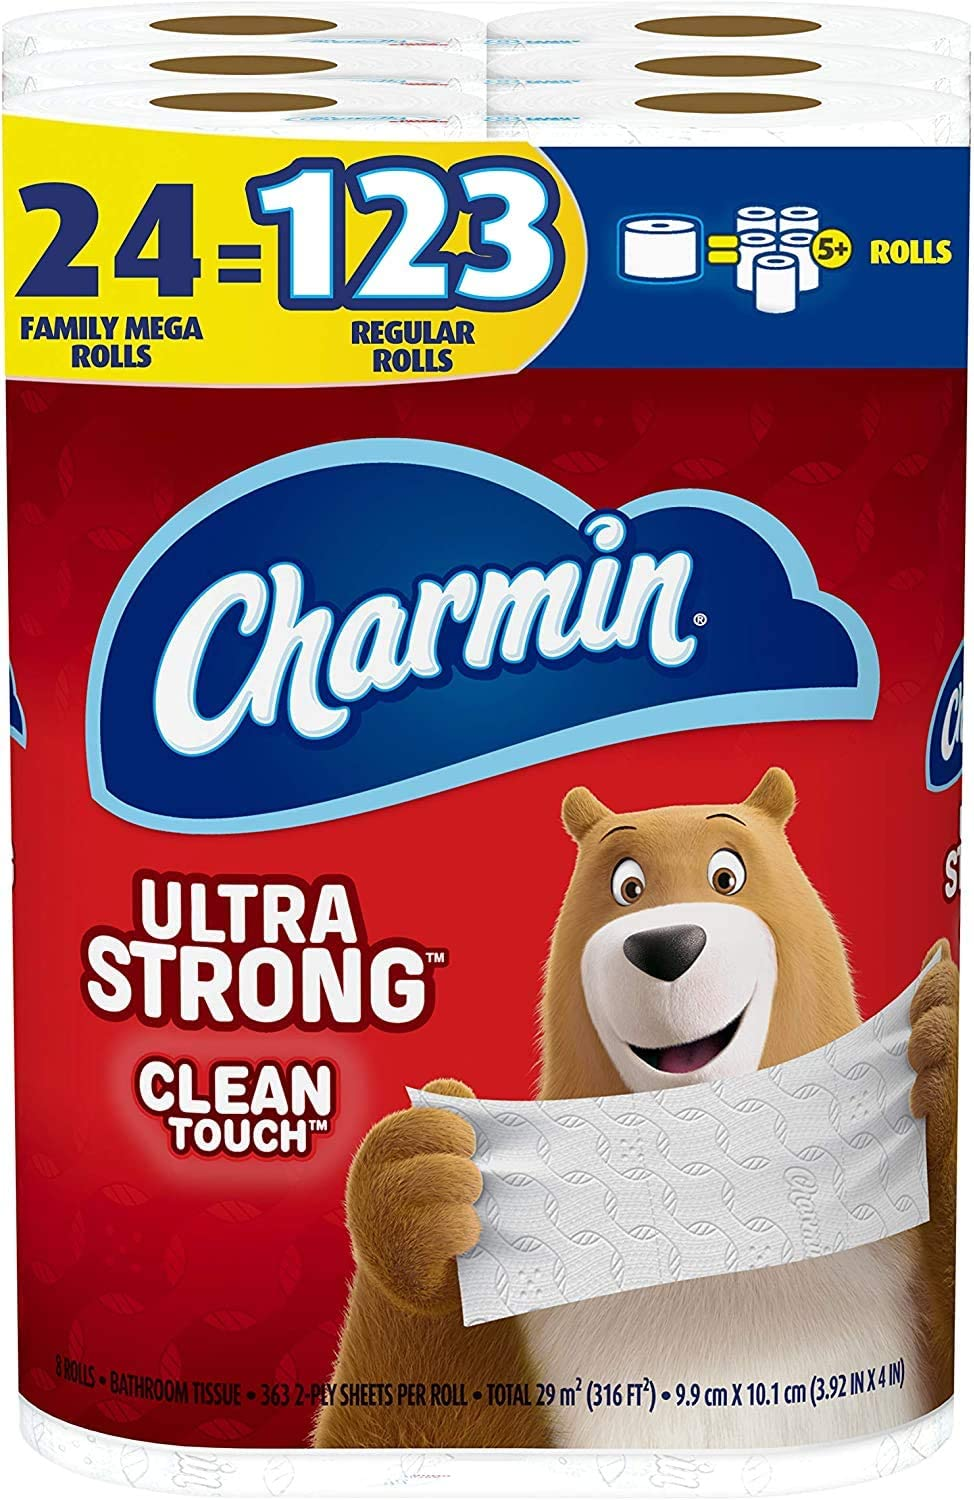 Charmin Ultra Strong Clean Touch Toilet Paper, 24 Family Mega Rolls = 123 Regular Rolls: Health & Personal Care